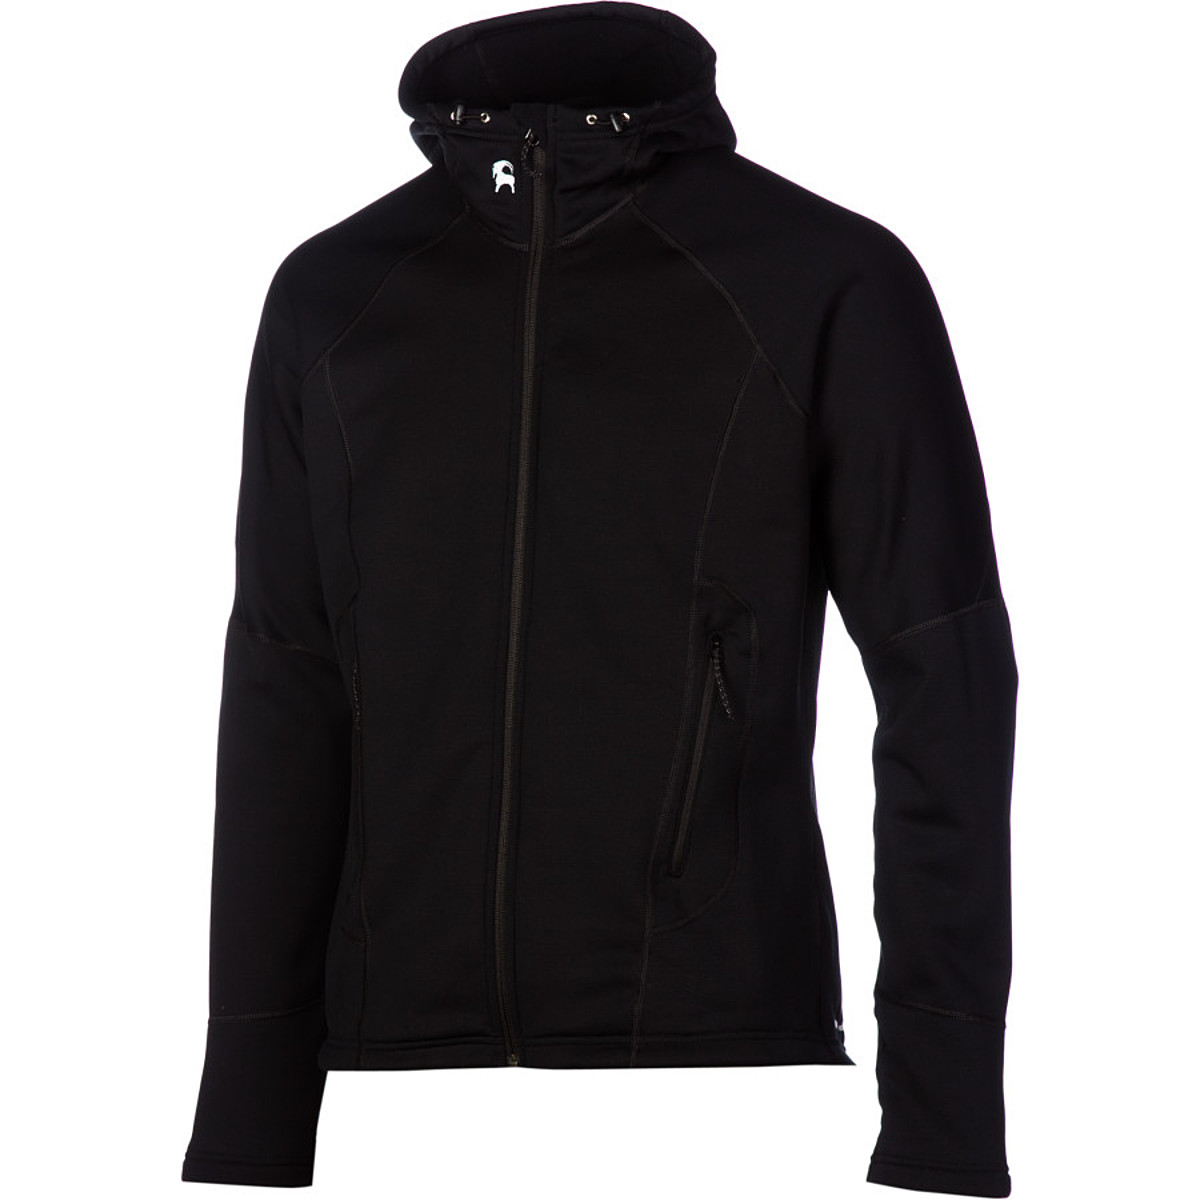 Backcountry.com Breaker Fleece Hooded Jacket